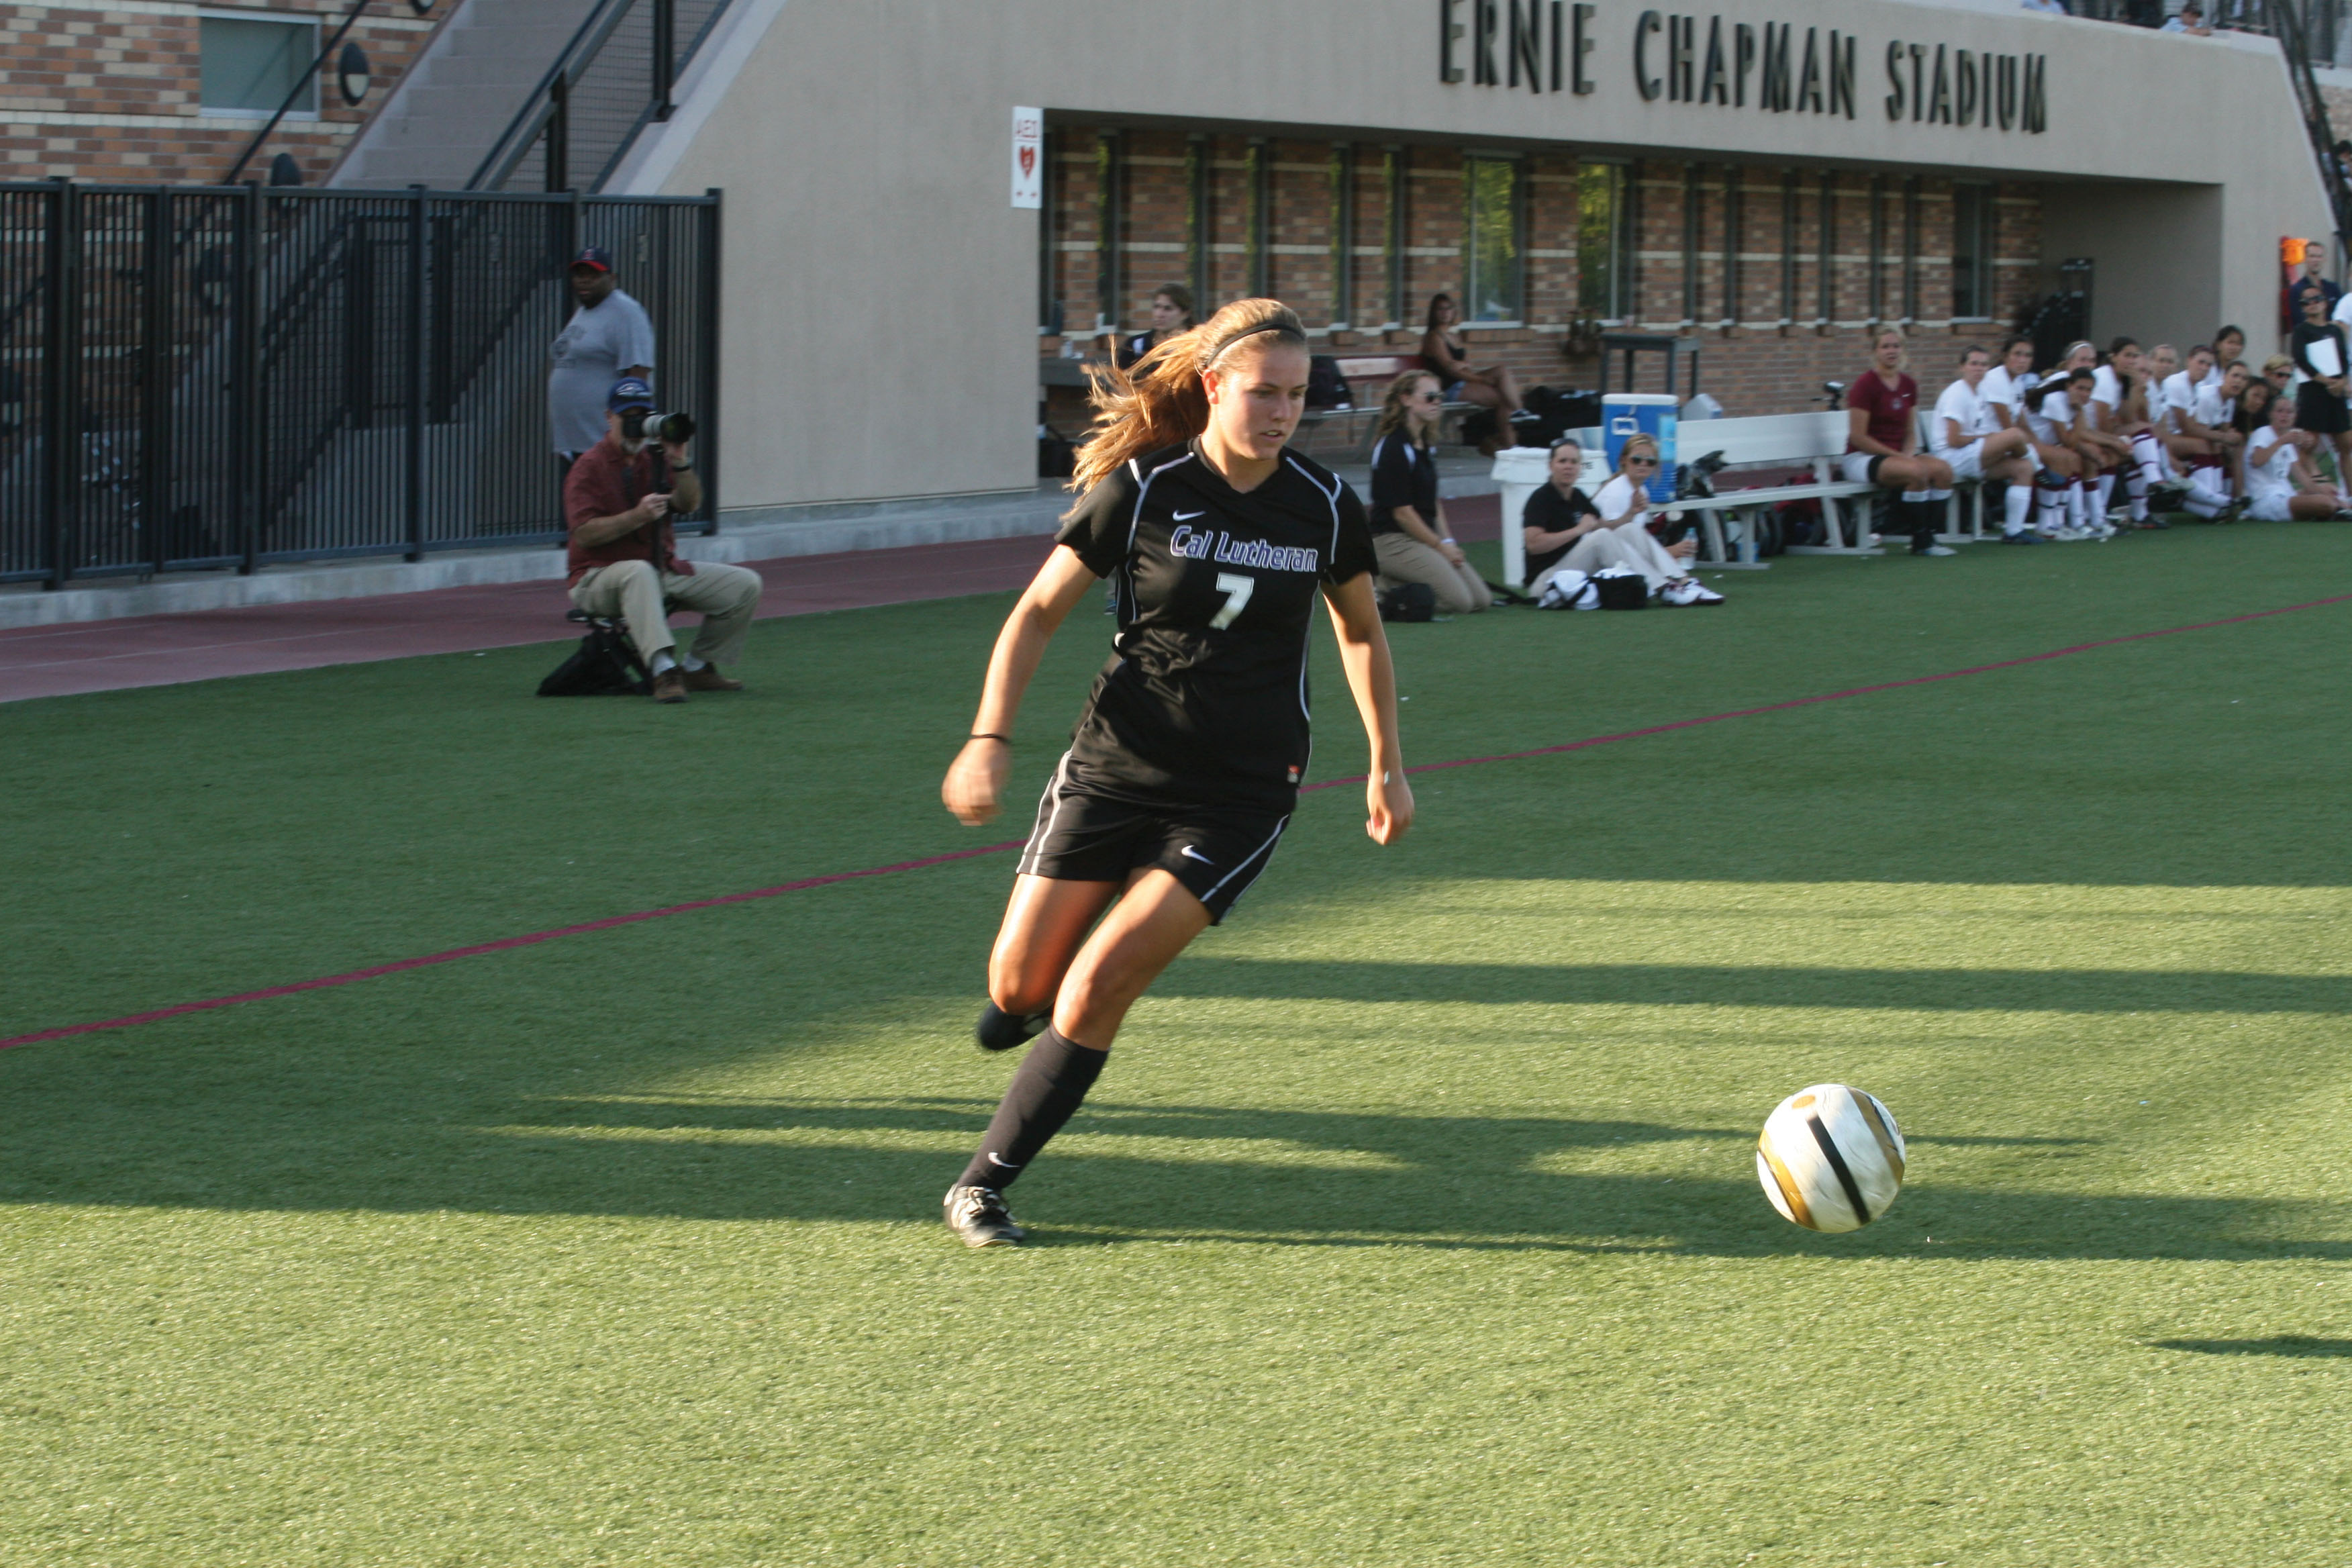 Freshman Taylor Will scored two goals including the game-winner in a 3-2 road victory over Chapman.